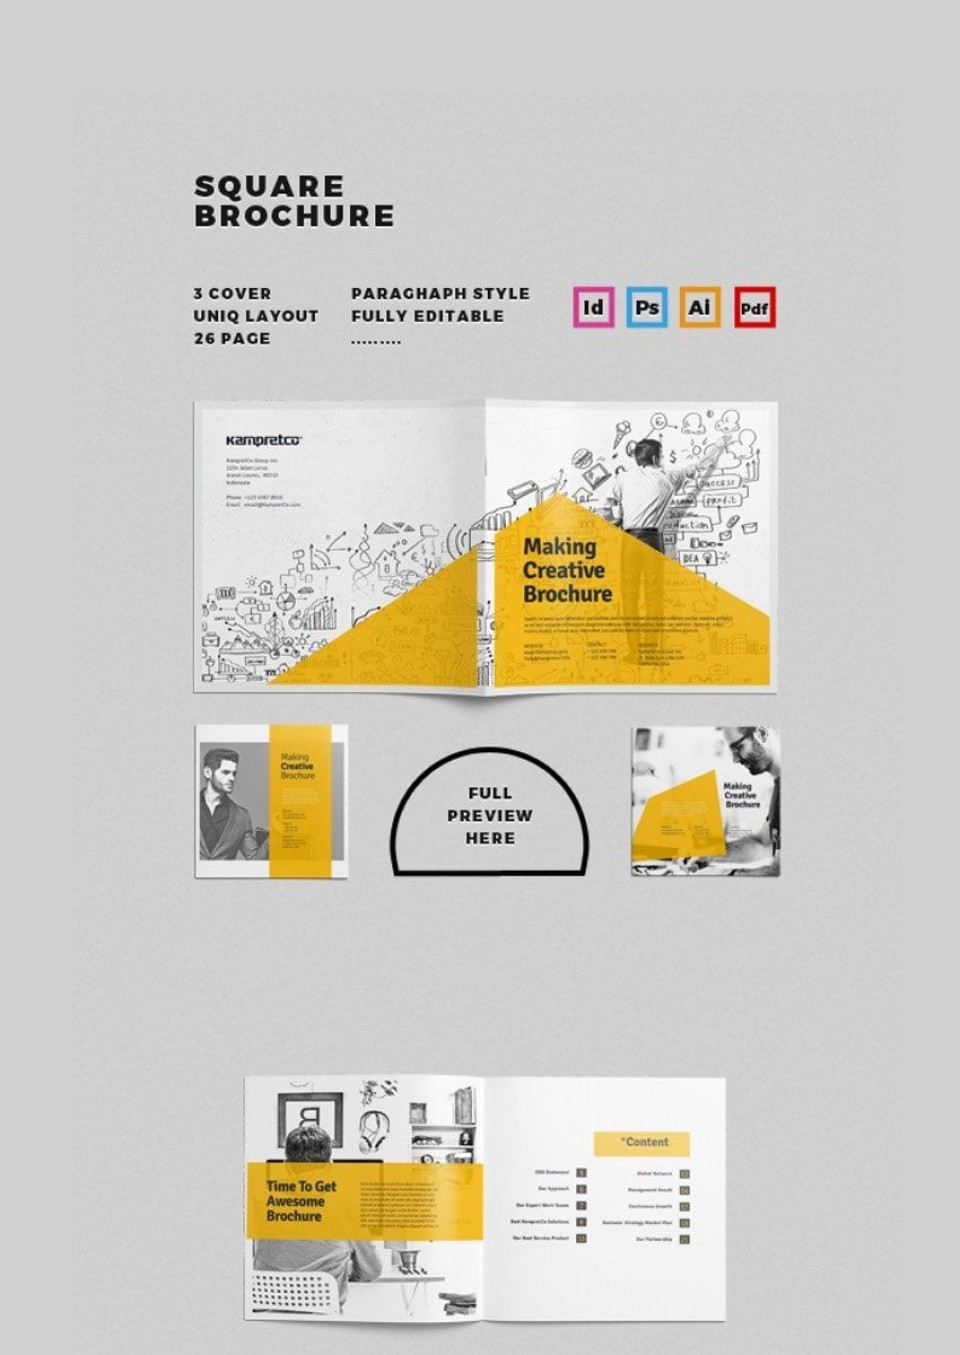 002 Breathtaking Adobe Photoshop Brochure Template Free Download Picture 960